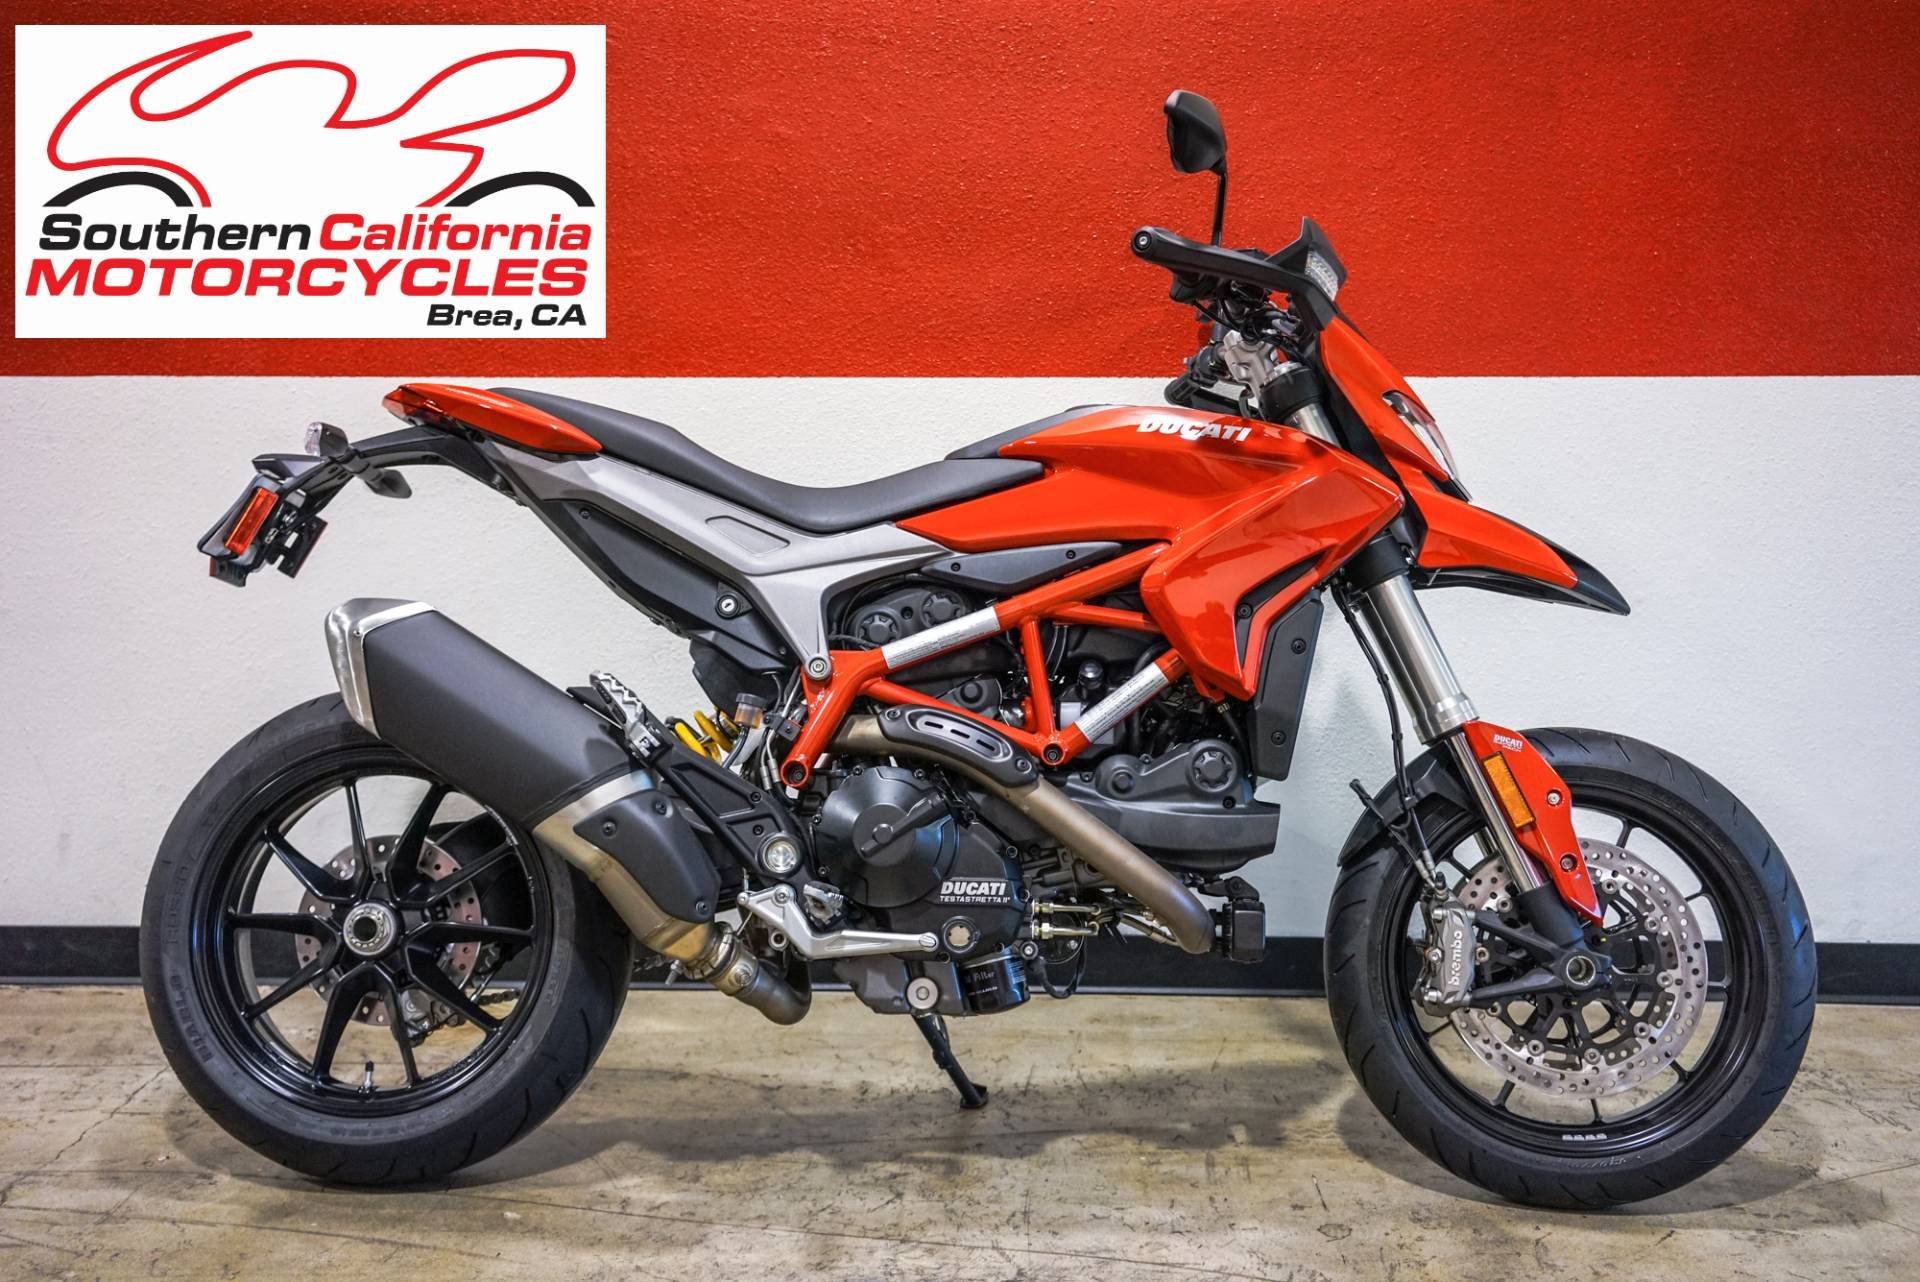 2018 Ducati Hypermotard 939 in Brea, California - Photo 1